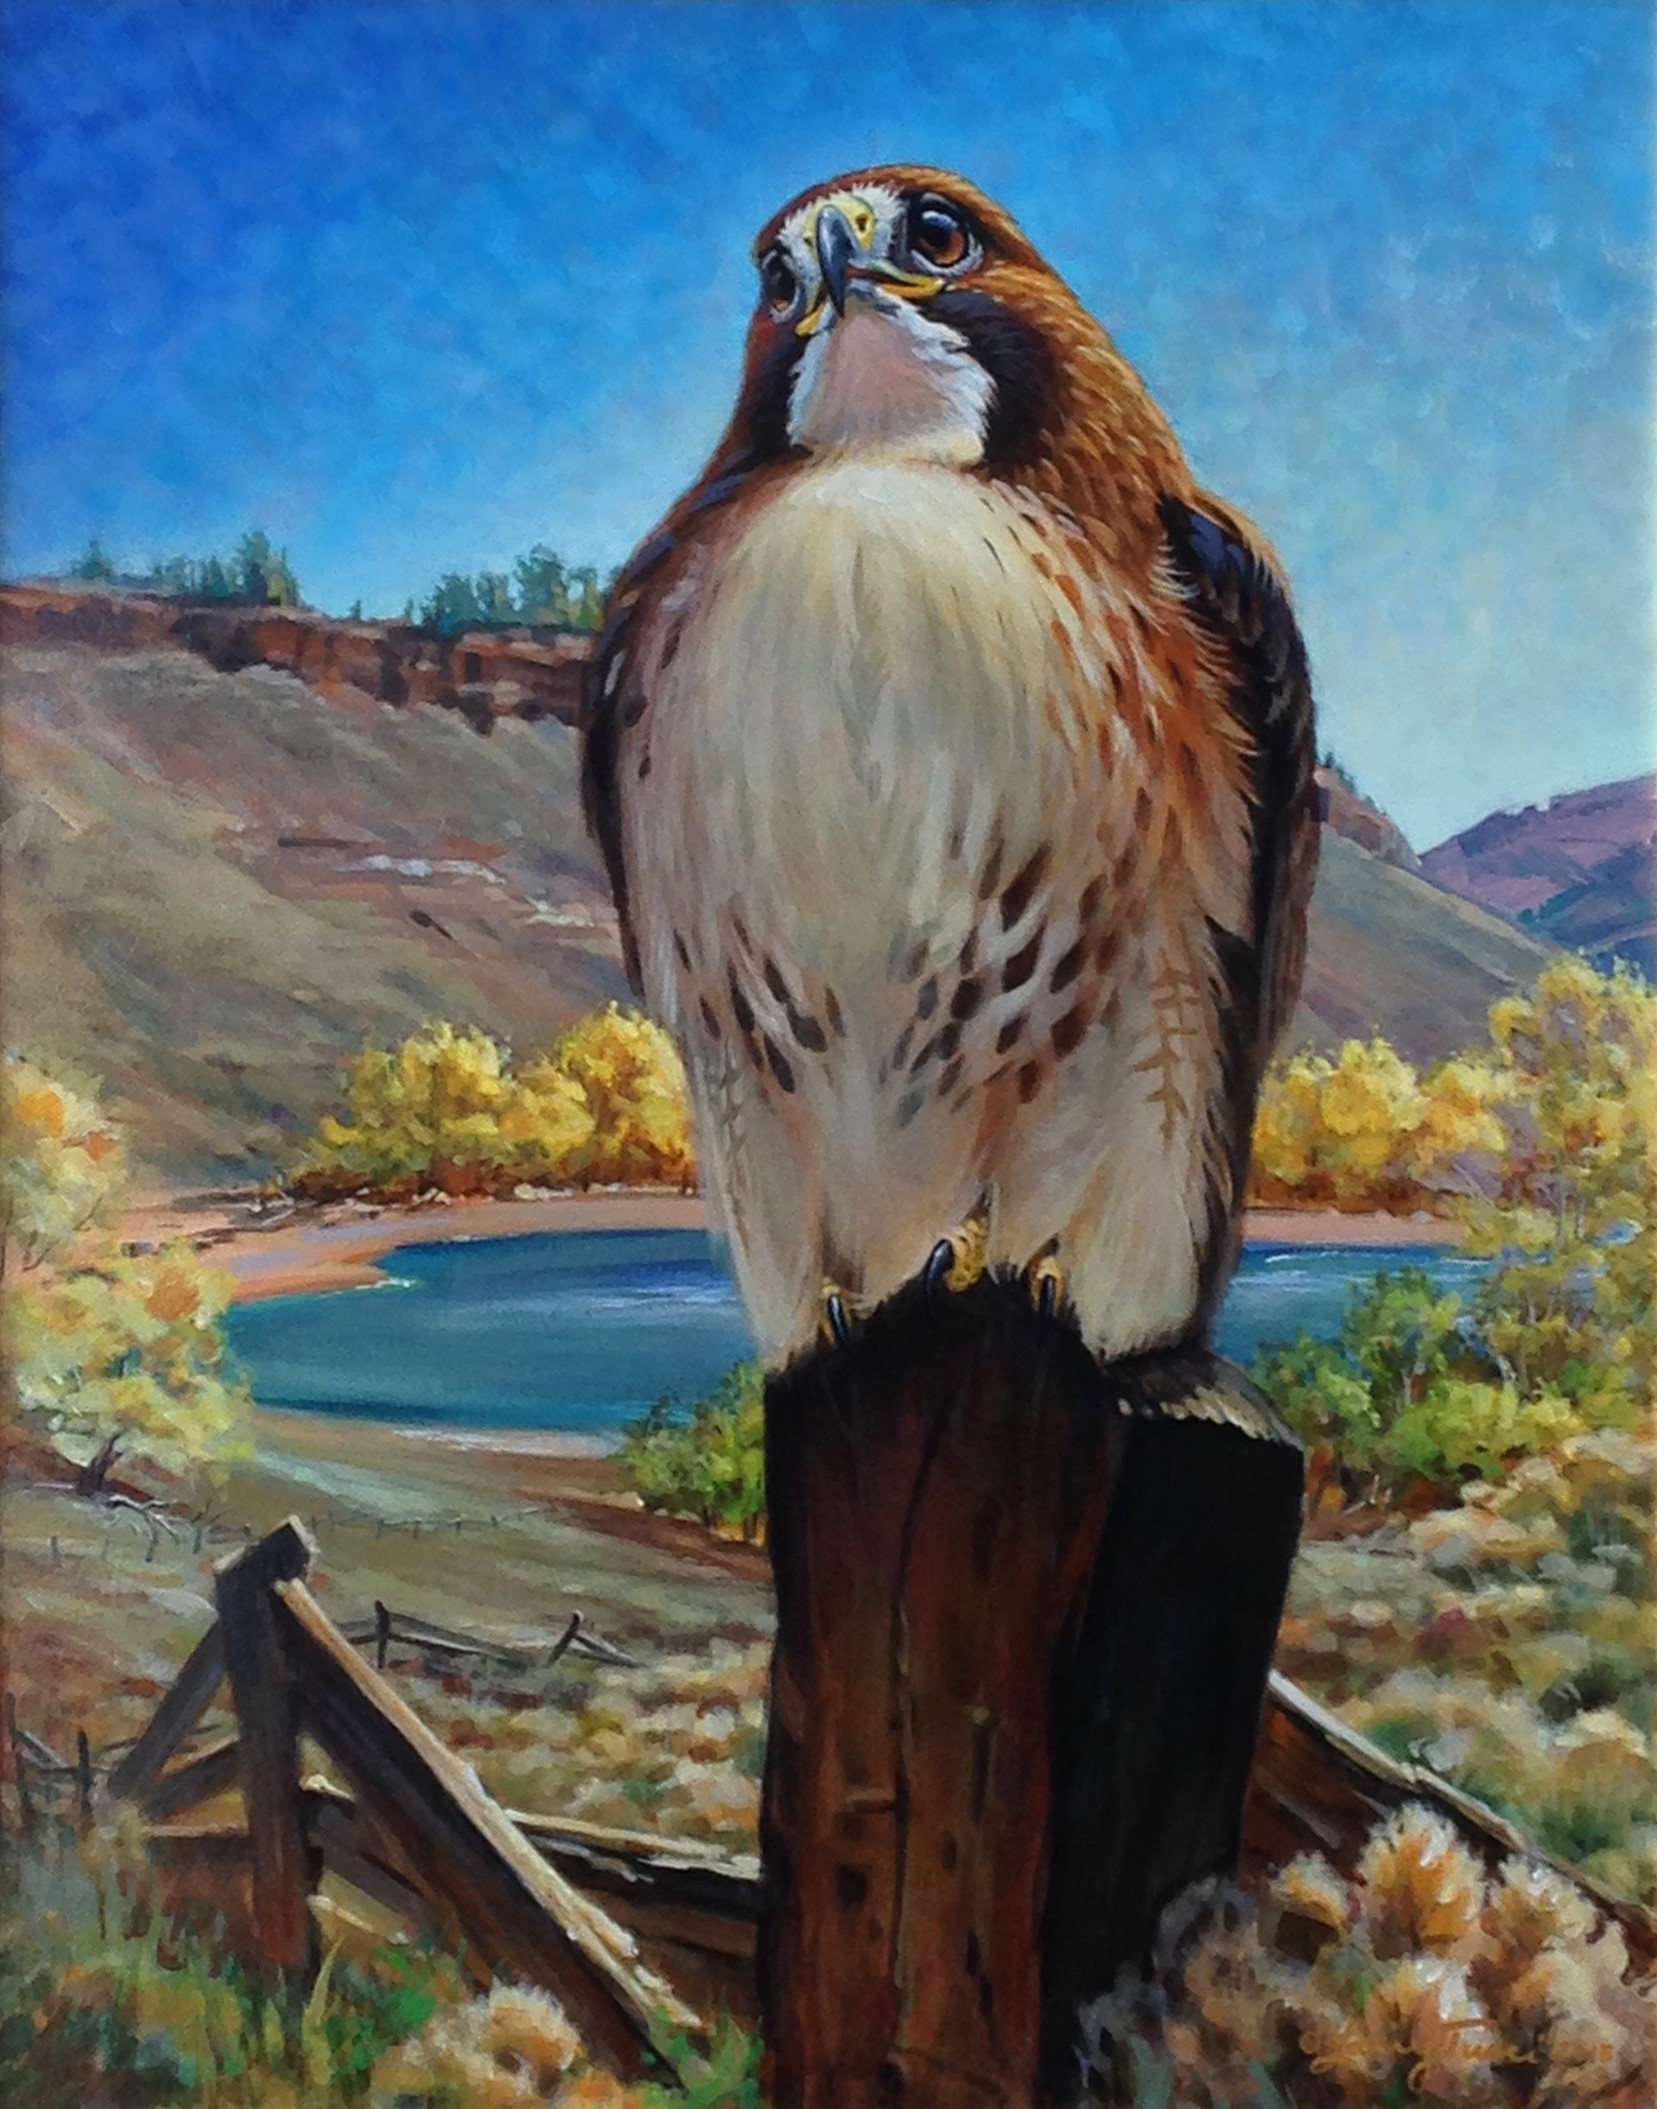 "Image 2: ""A Proud Heritage - Red-tailed Hawk at Soderberg by Larry Tucci, 2017 Visual Artist of the Year"